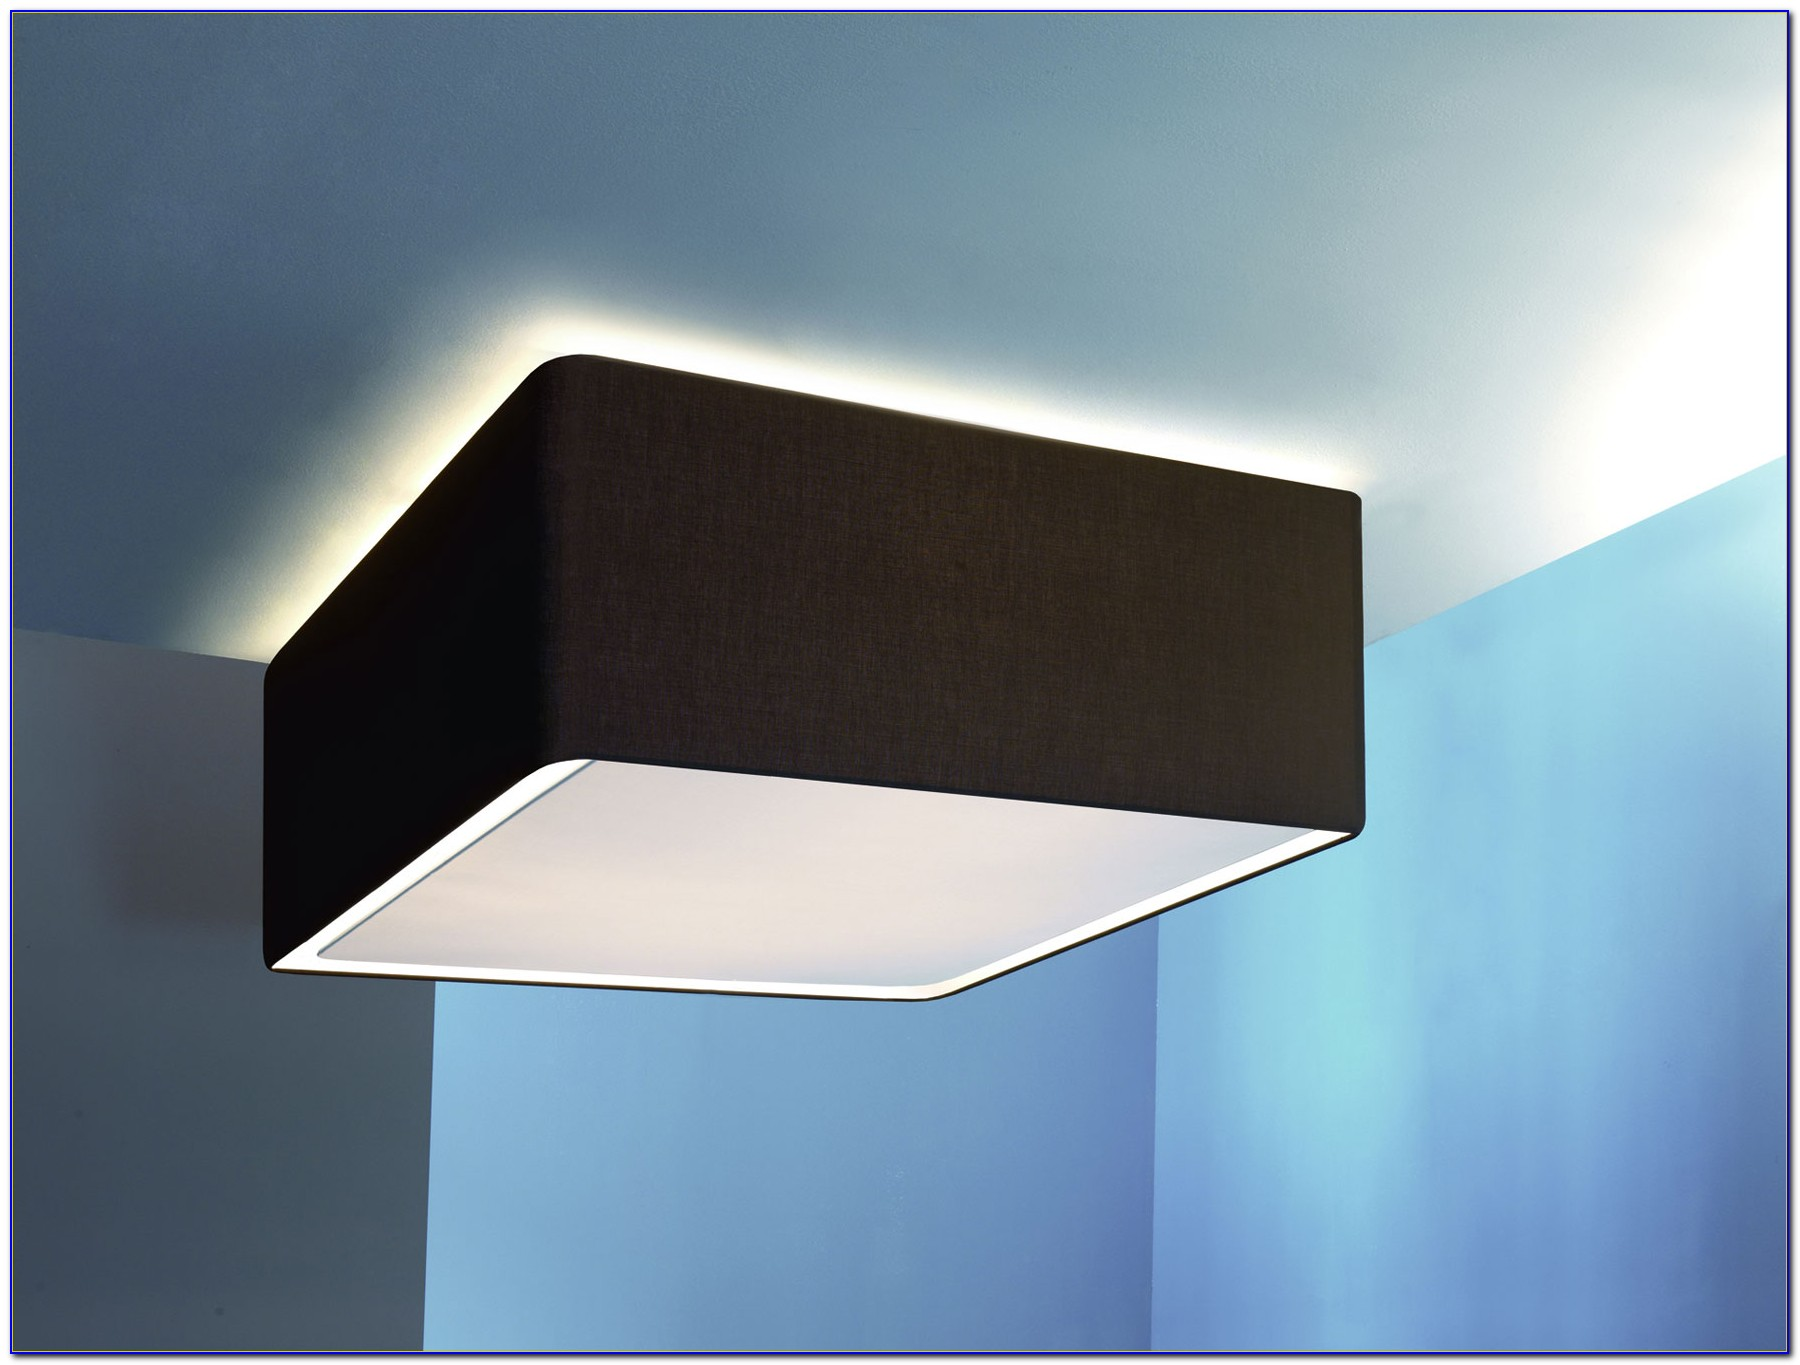 Large Square Ceiling Light Fixture